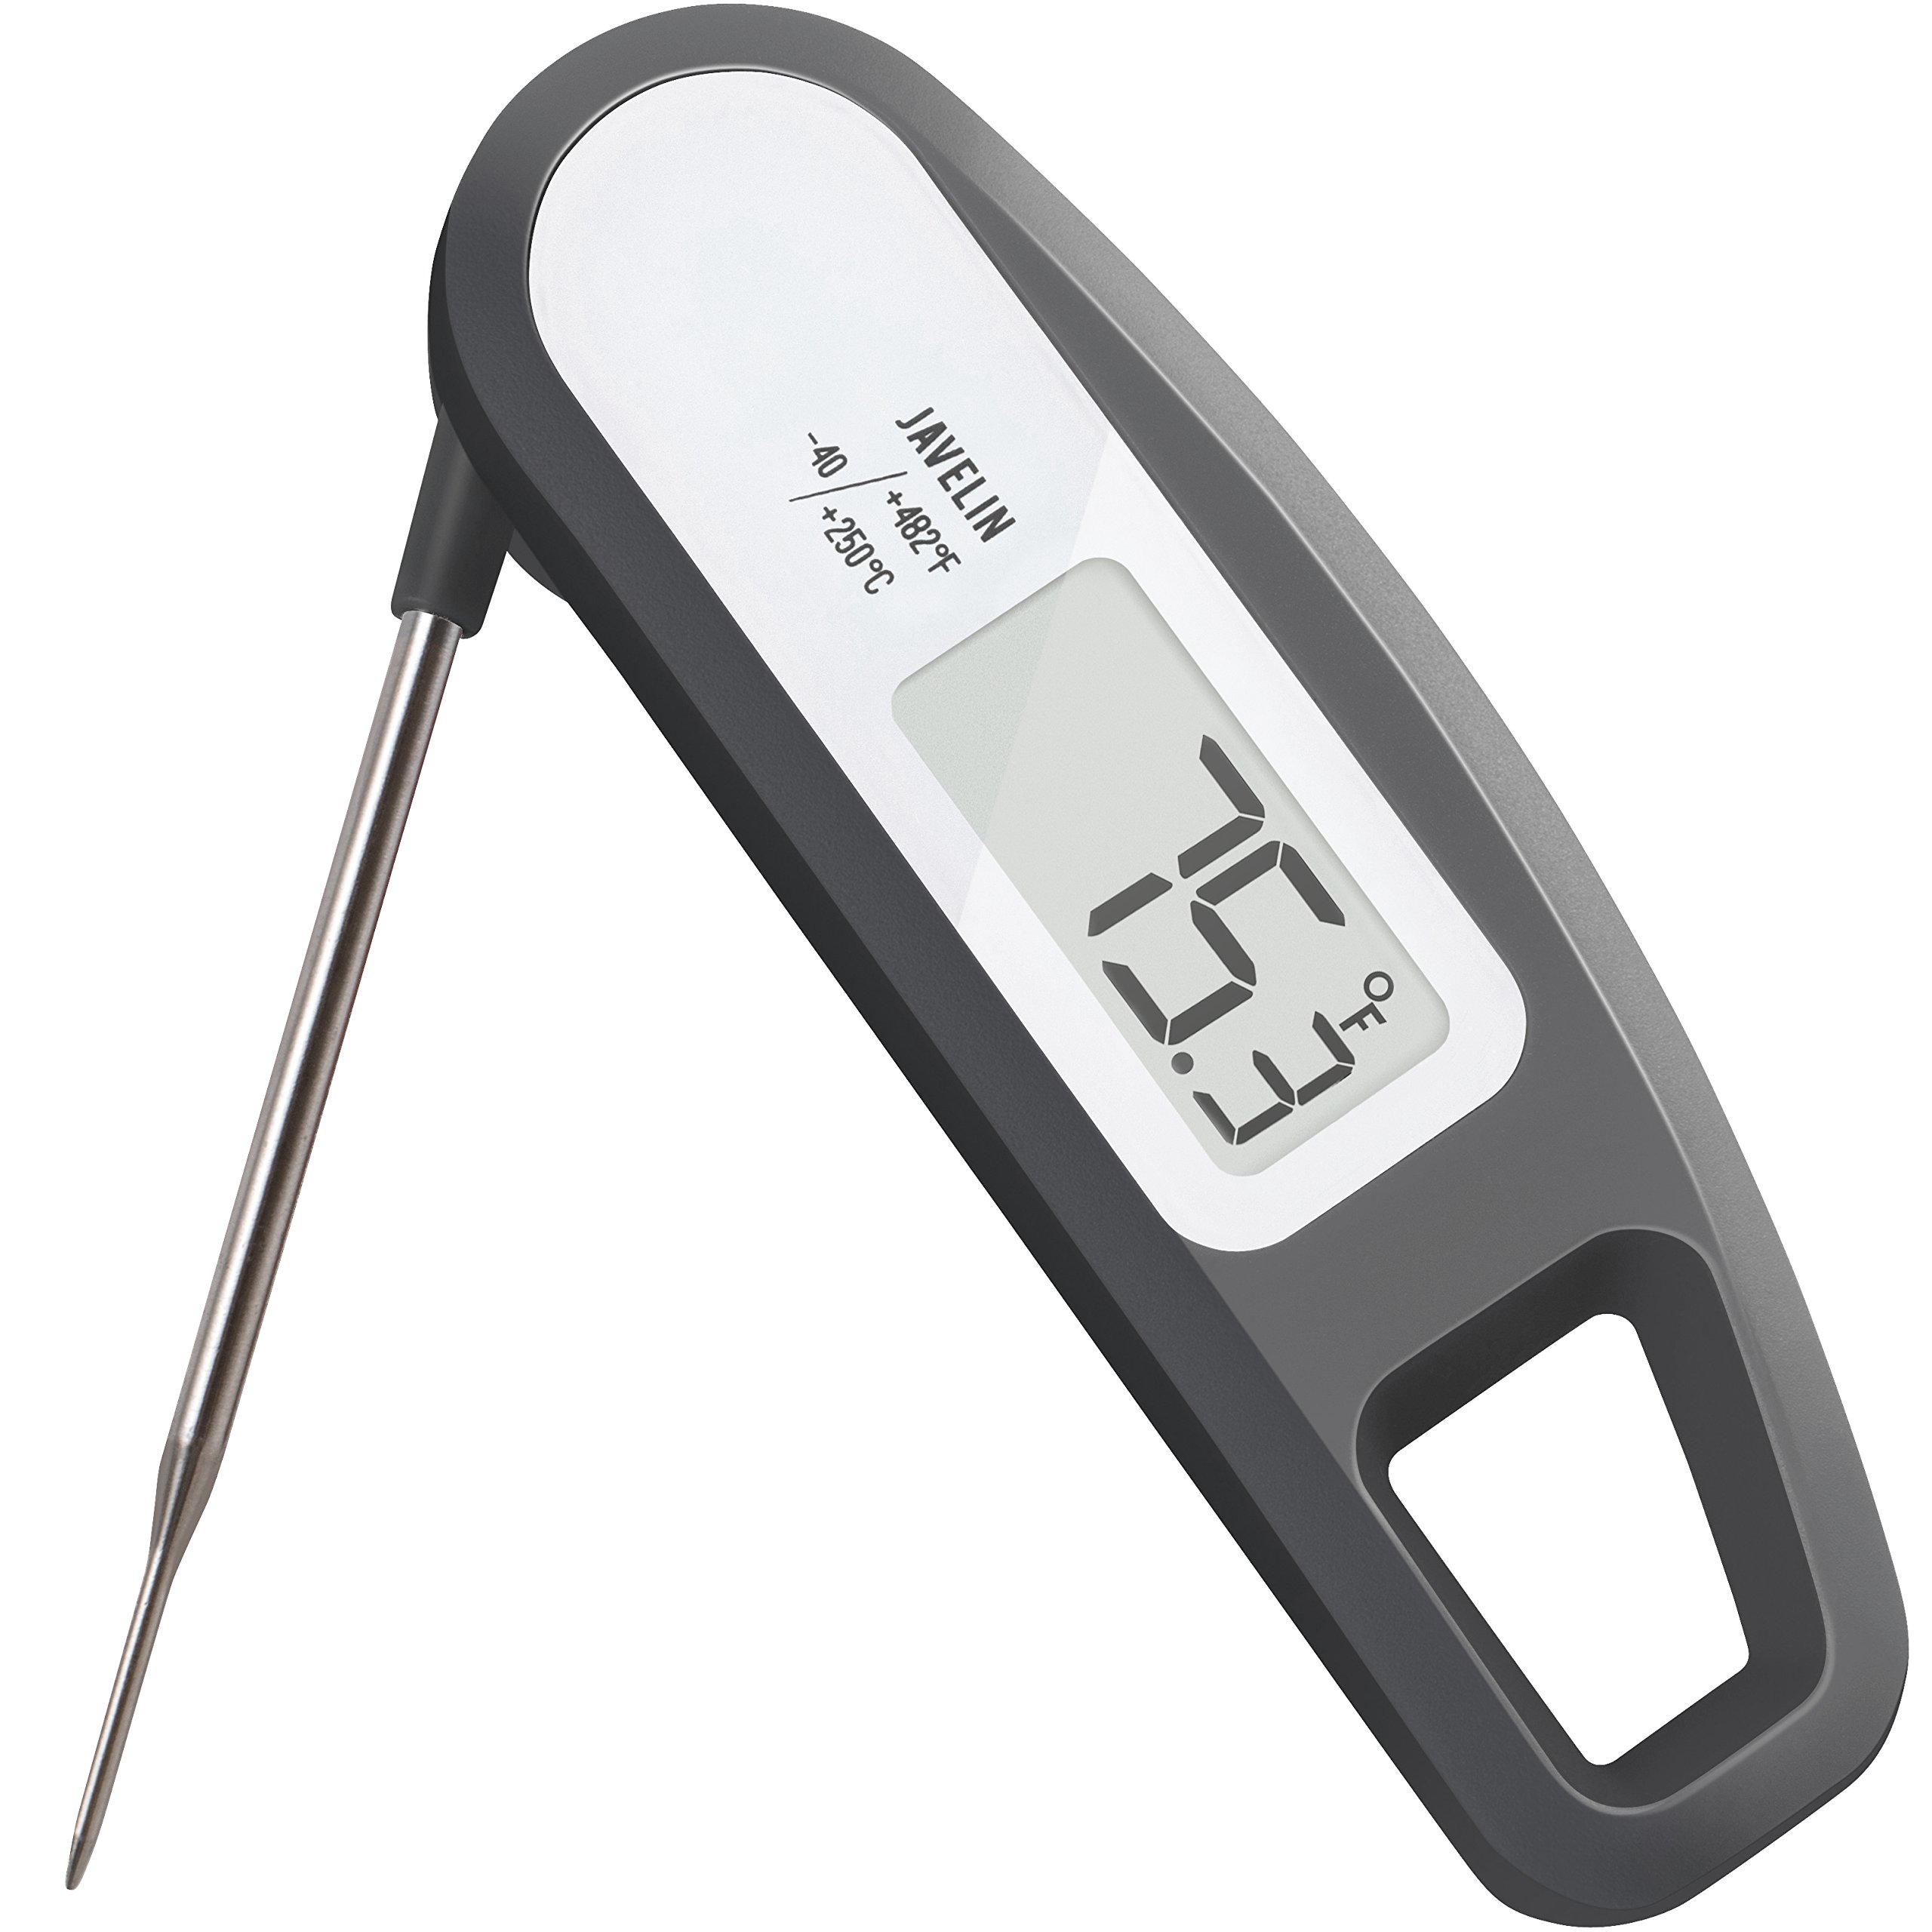 Lavatools PT12 Javelin Digital Instant Read Meat Thermometer (Sesame)